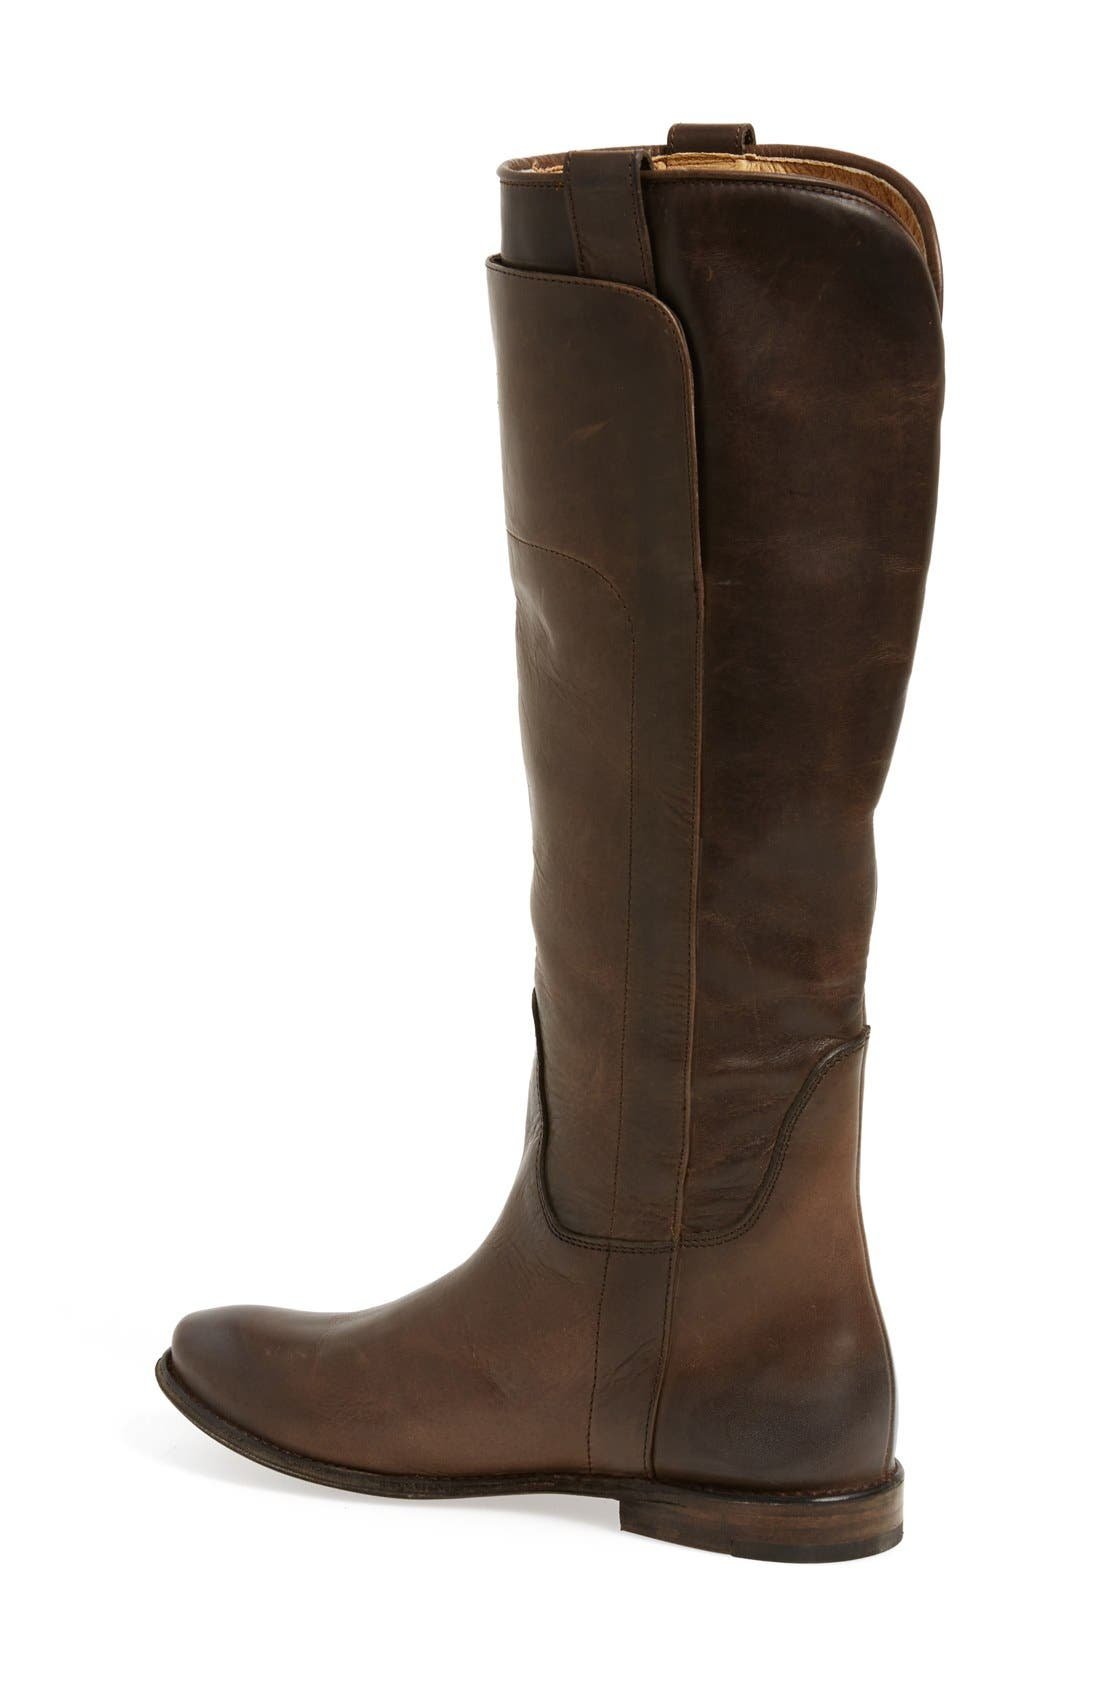 Alternate Image 2  - Frye 'Paige' Tall Riding Boot (Women)